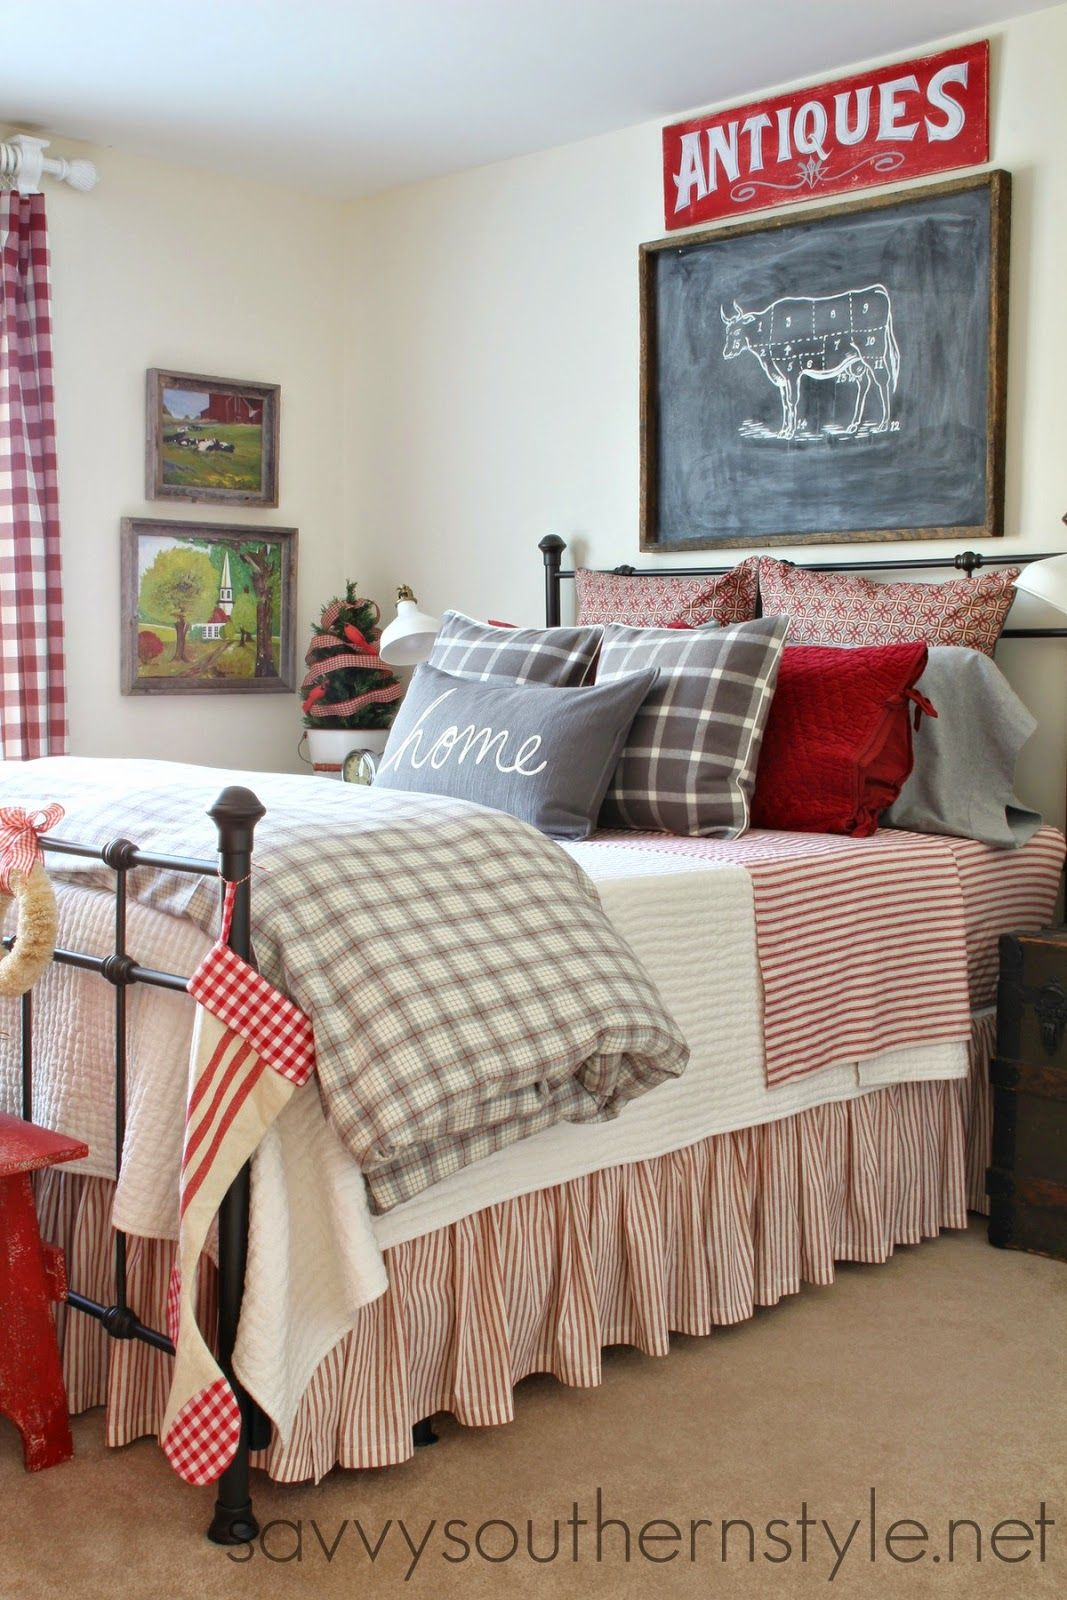 Savvy Southern Style Farmhouse style bedrooms, Home